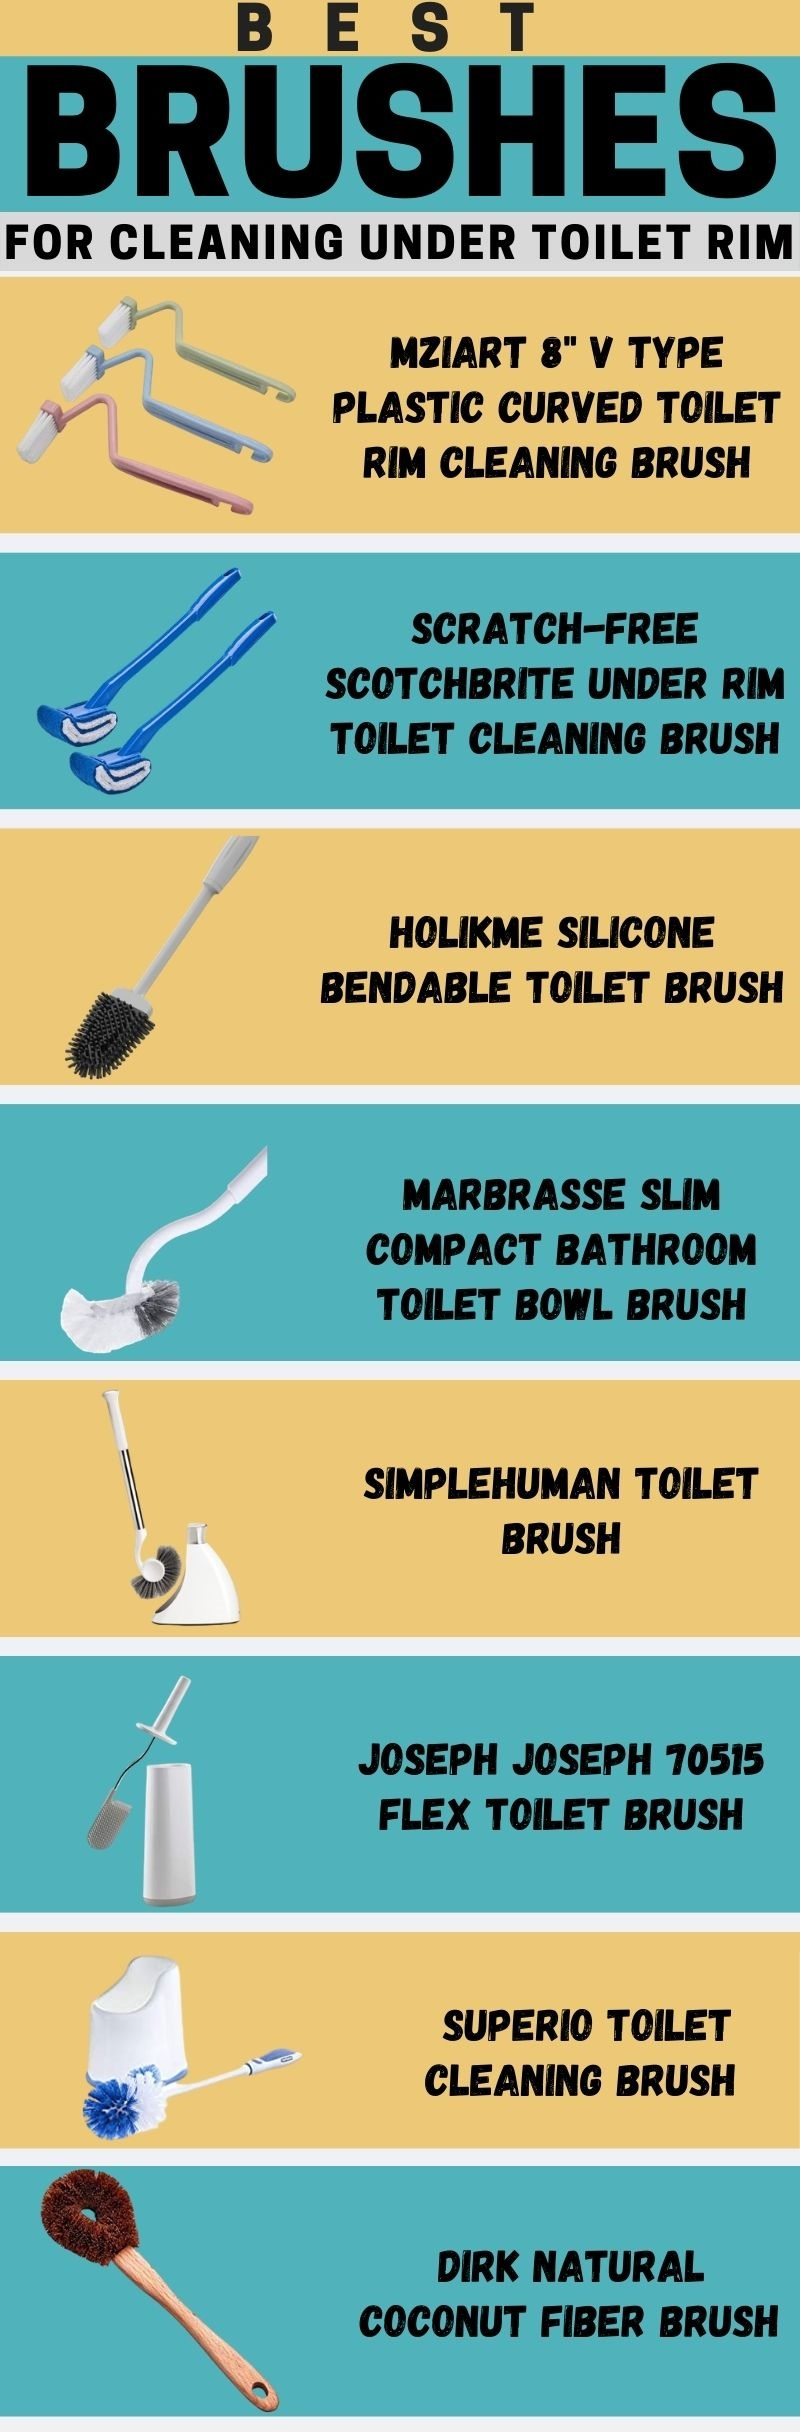 Best Brushes for Cleaning Under Toilet Rim